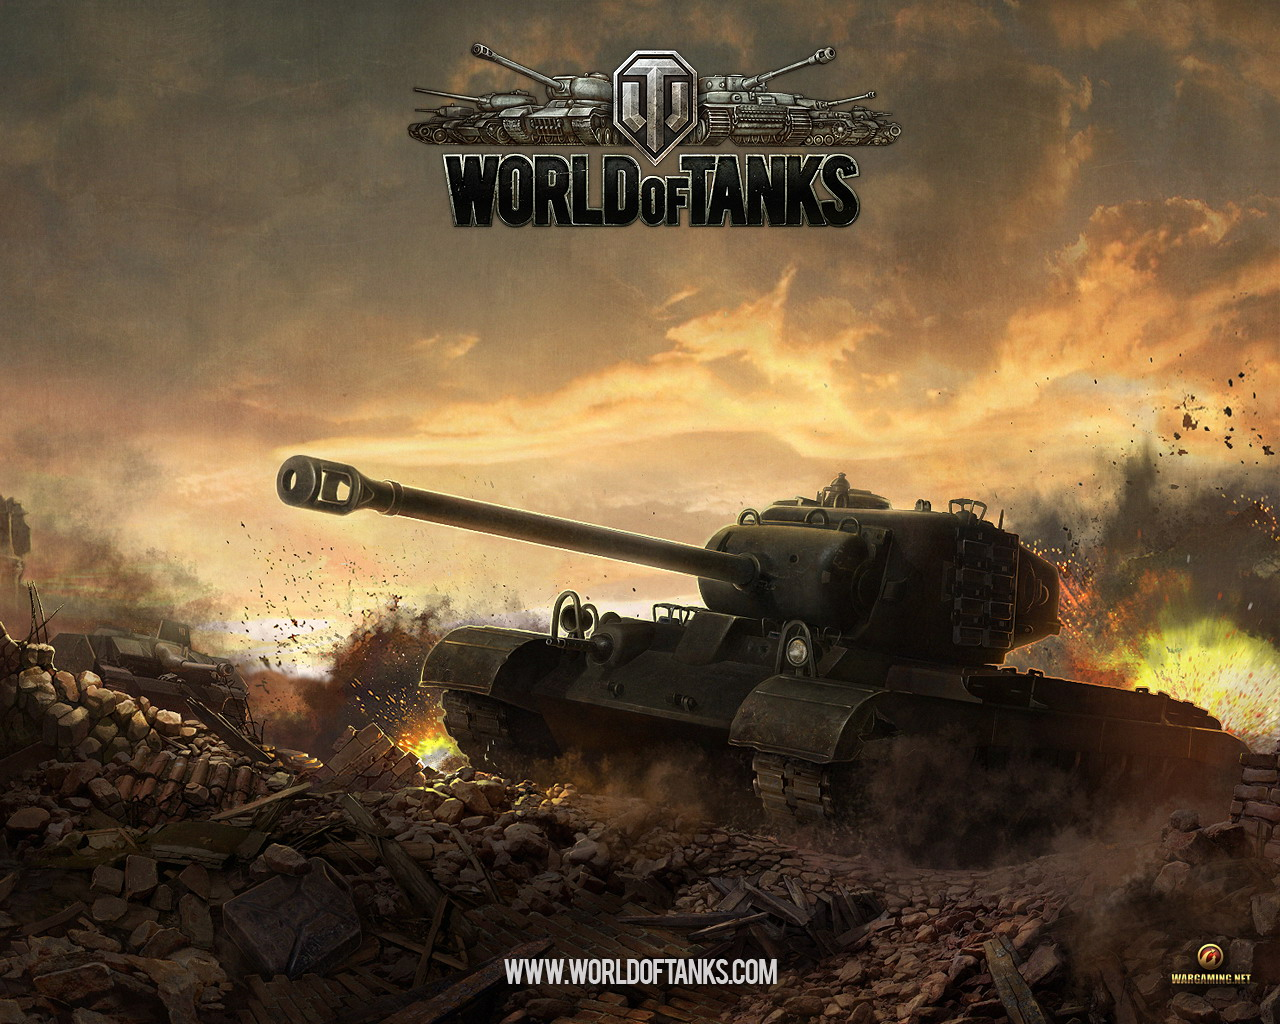 World of Tanks - Wallpaper